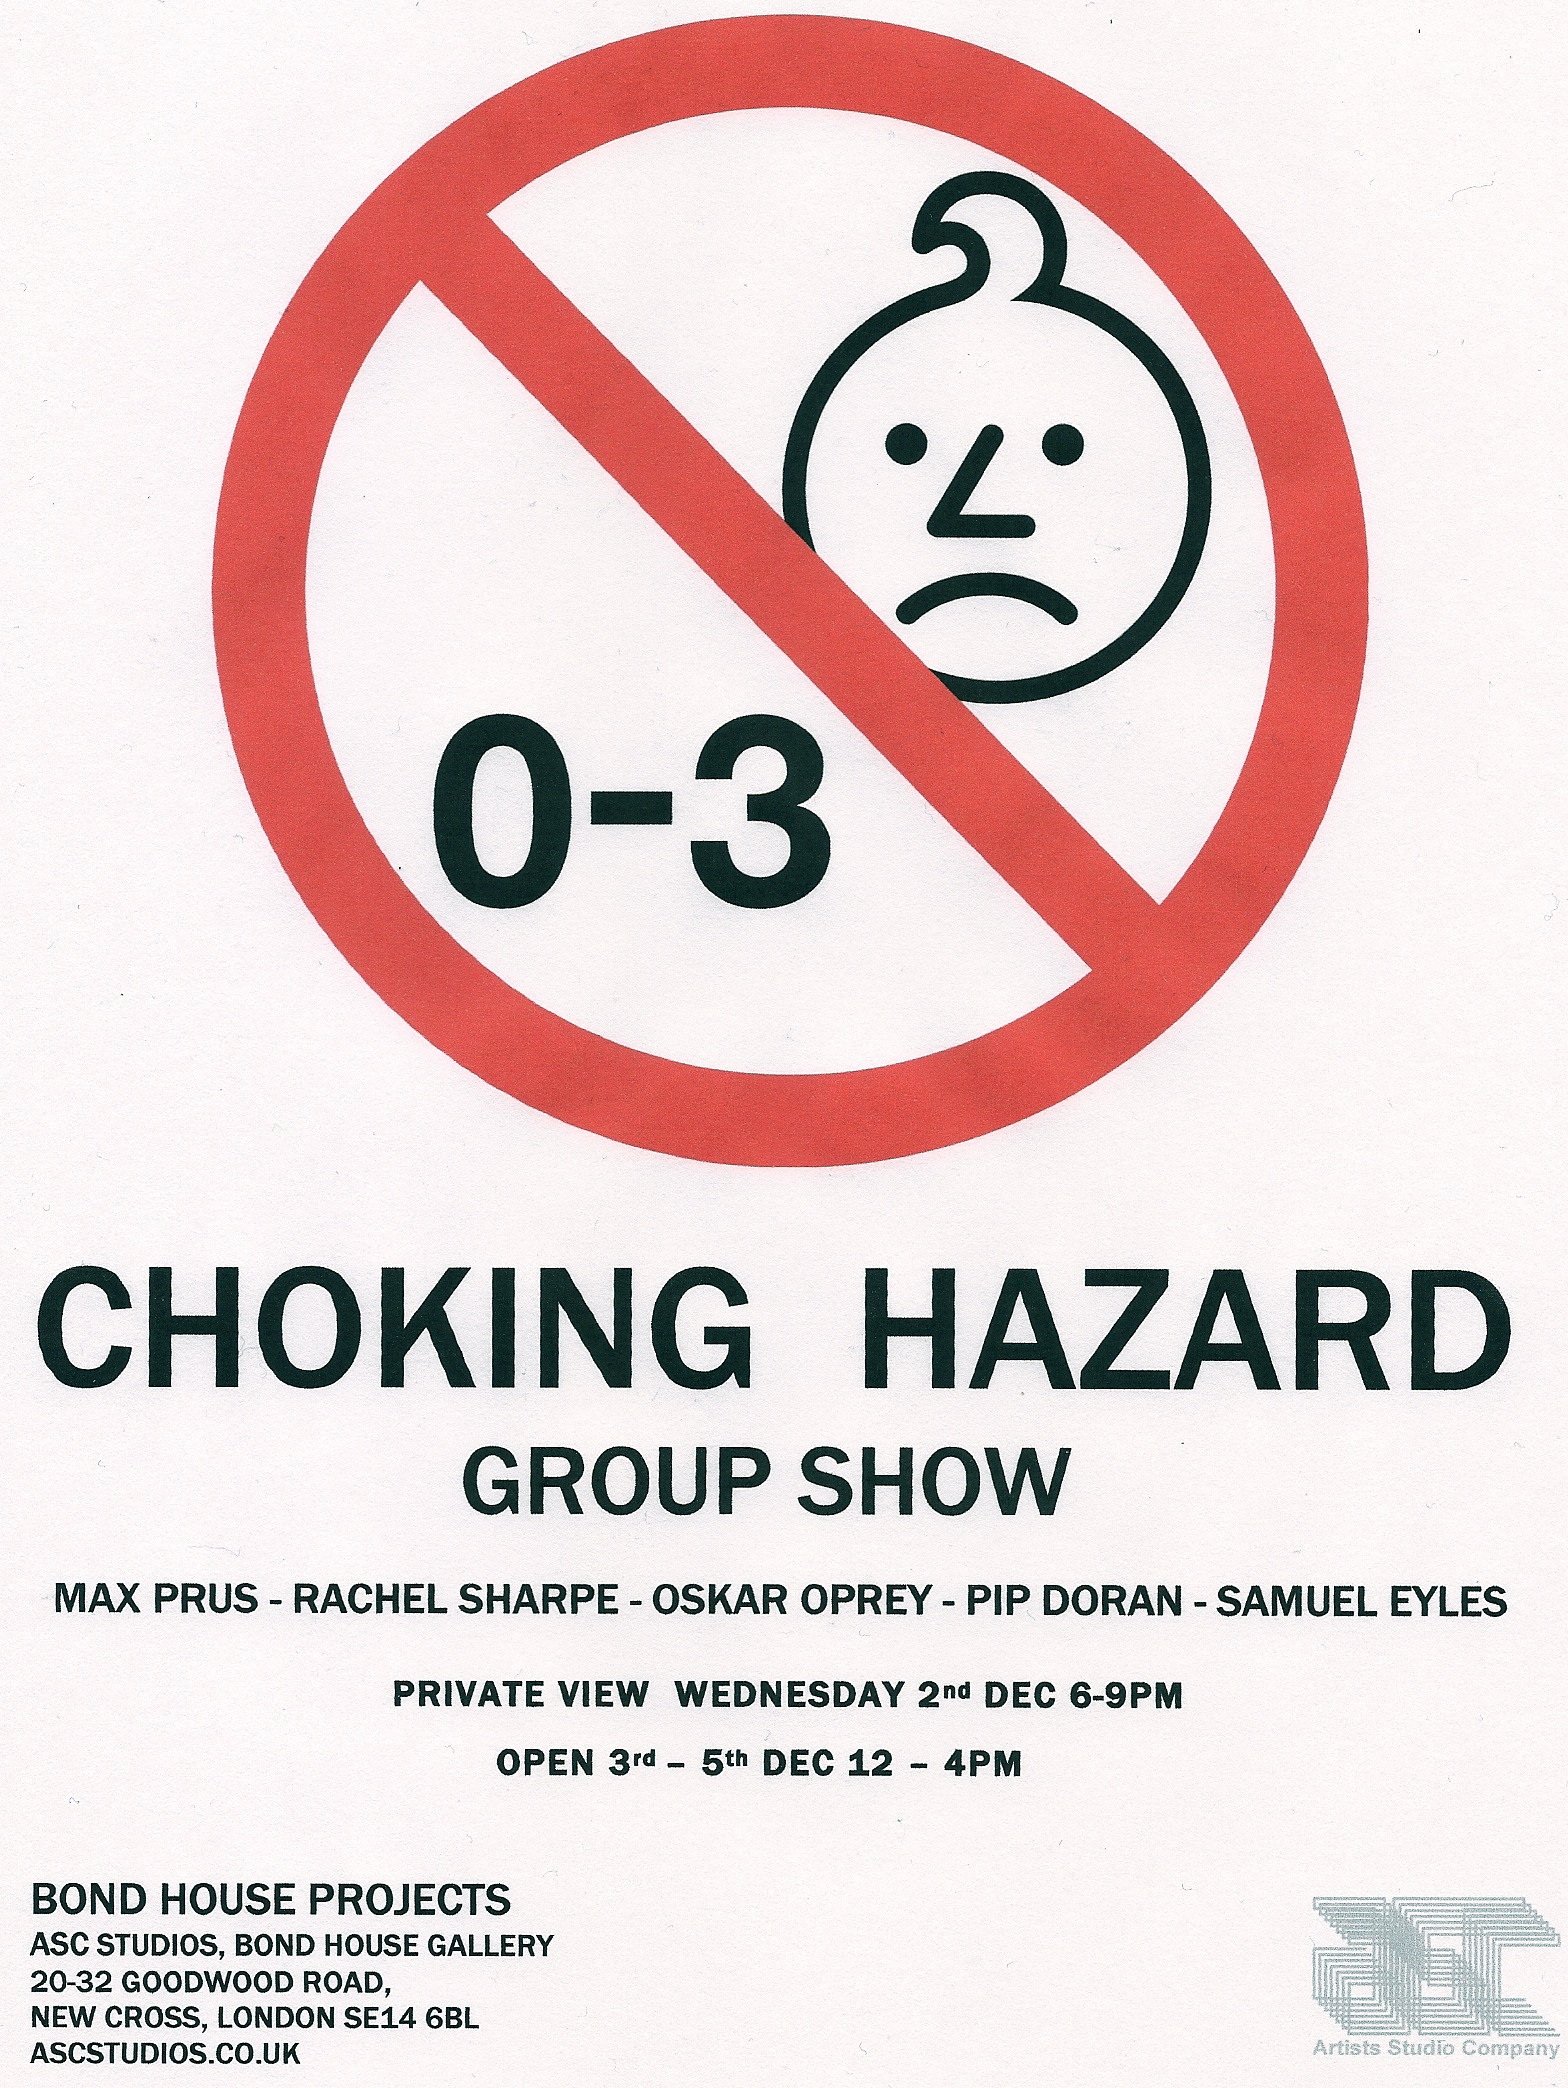 CHOKING HAZARD POSTER